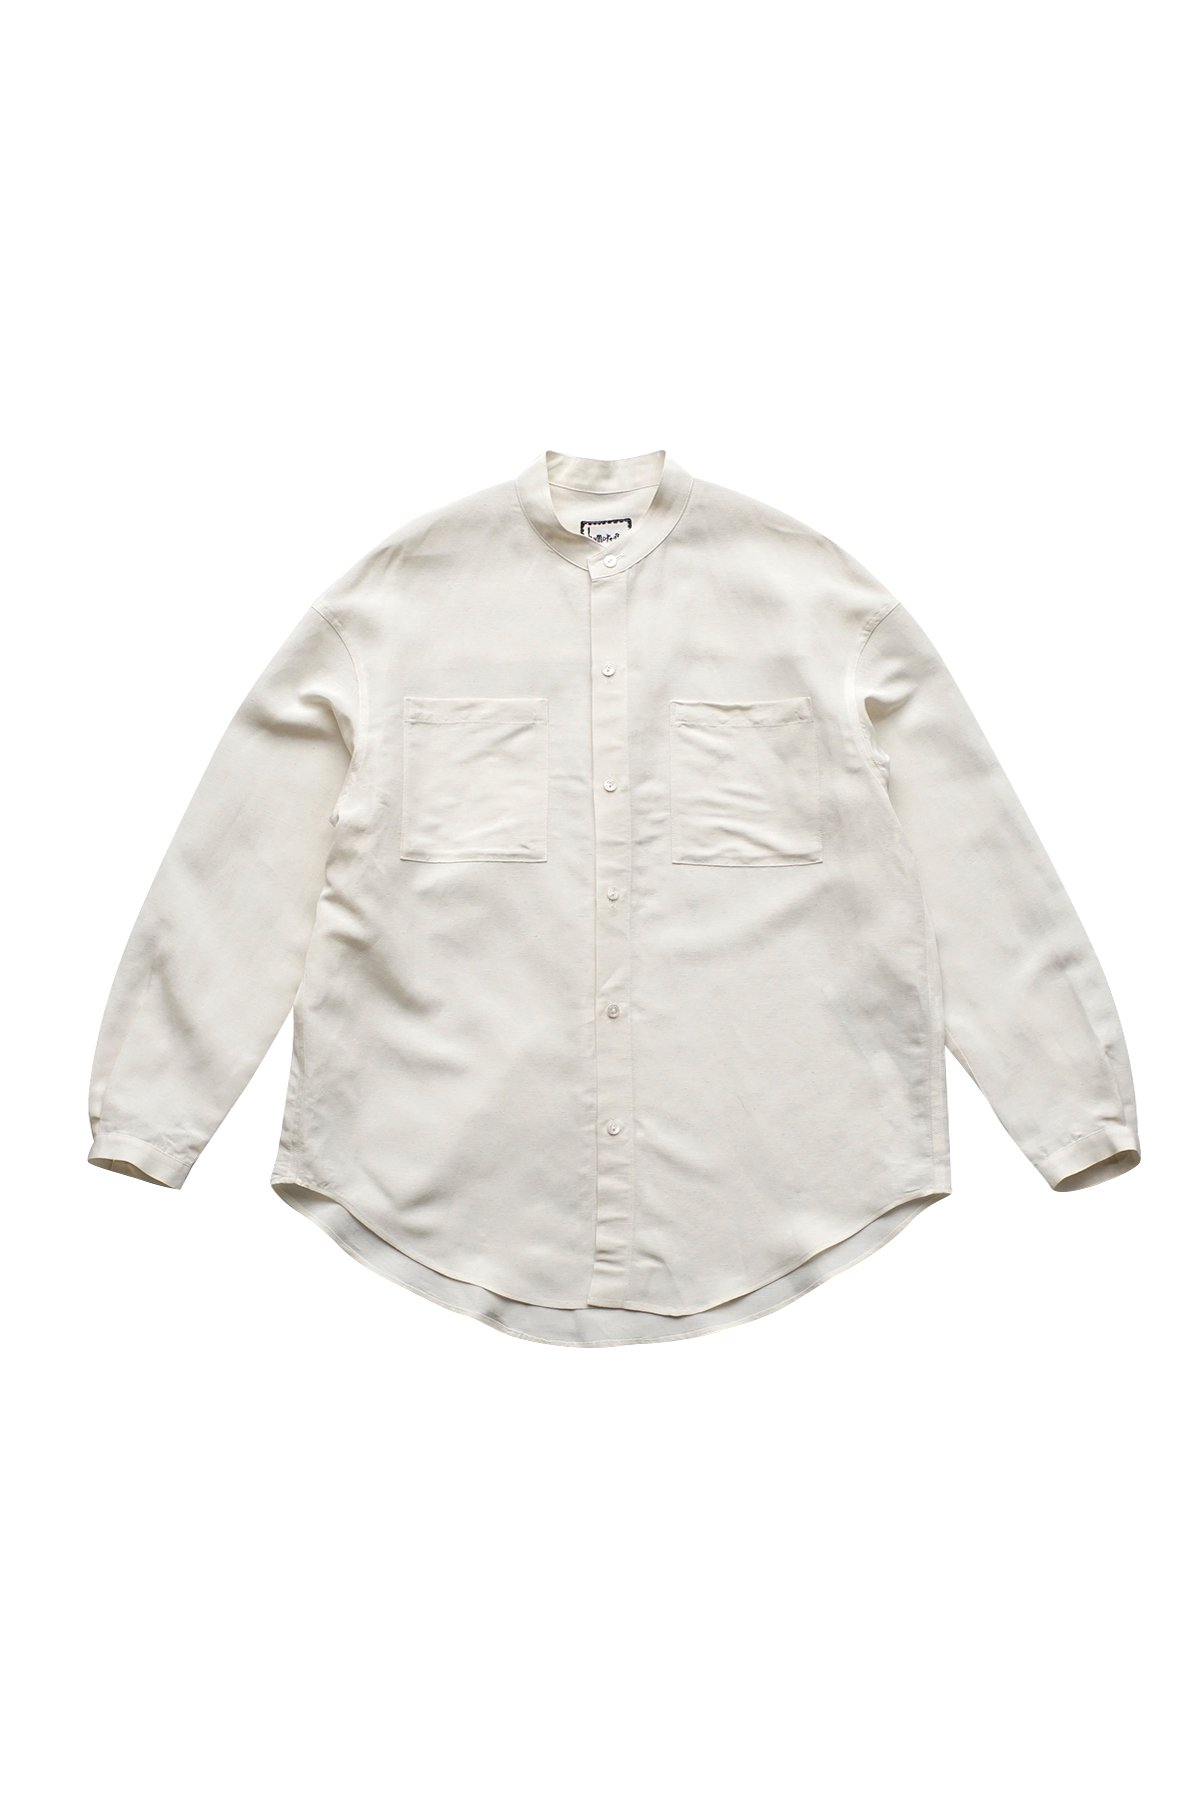 humoresque ★★★ - Exclusive MEN'S STAND COLLAR SHIRT LONG SLEEV NATURAL - PRICE 51,700 tax-in